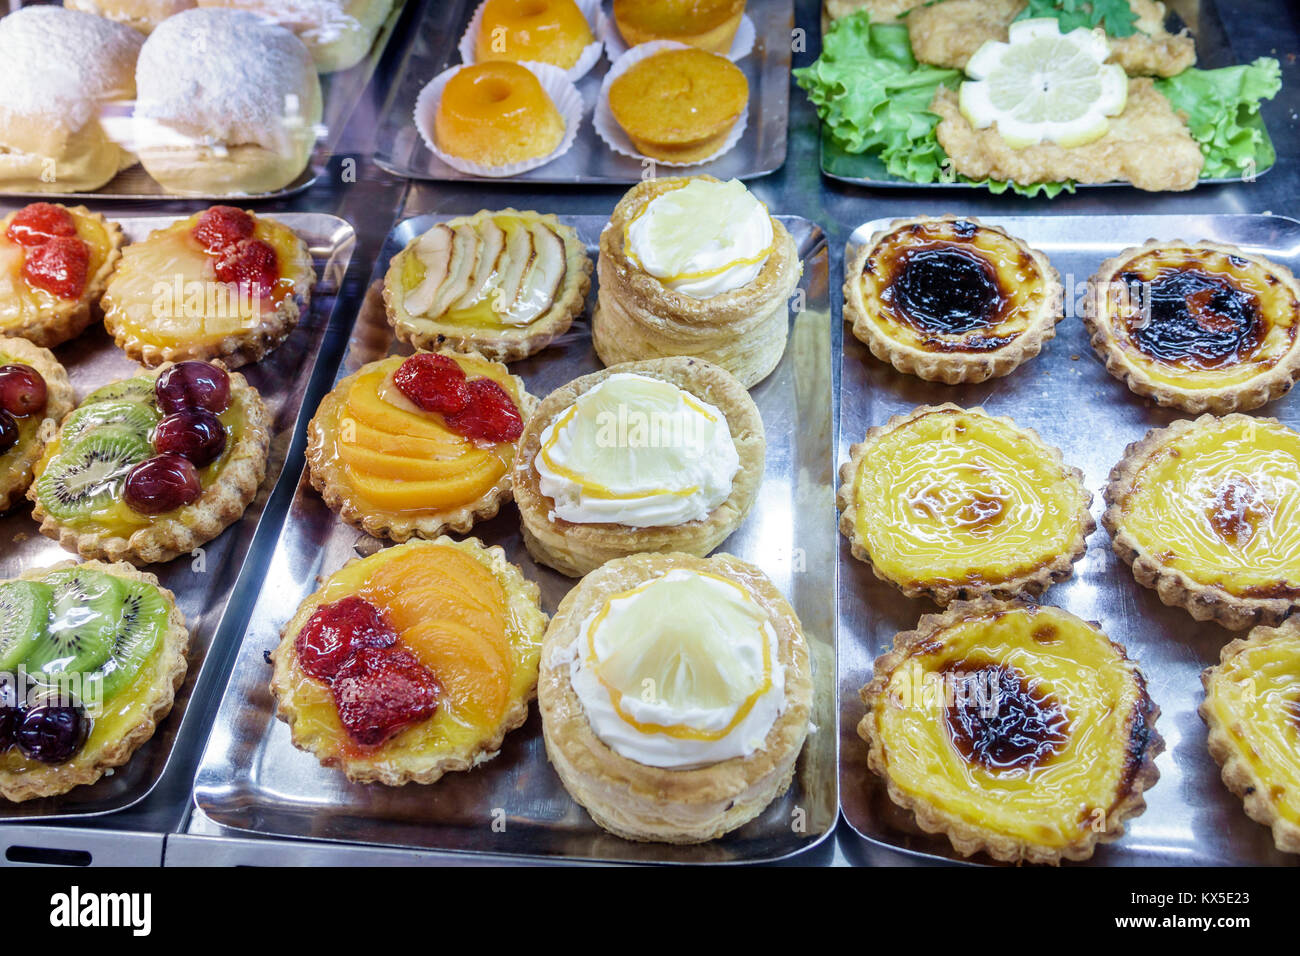 Coimbra Portugal historic center Largo da Portagem main square Cafe Montanha restaurant pastry shop bakery display - Stock Image